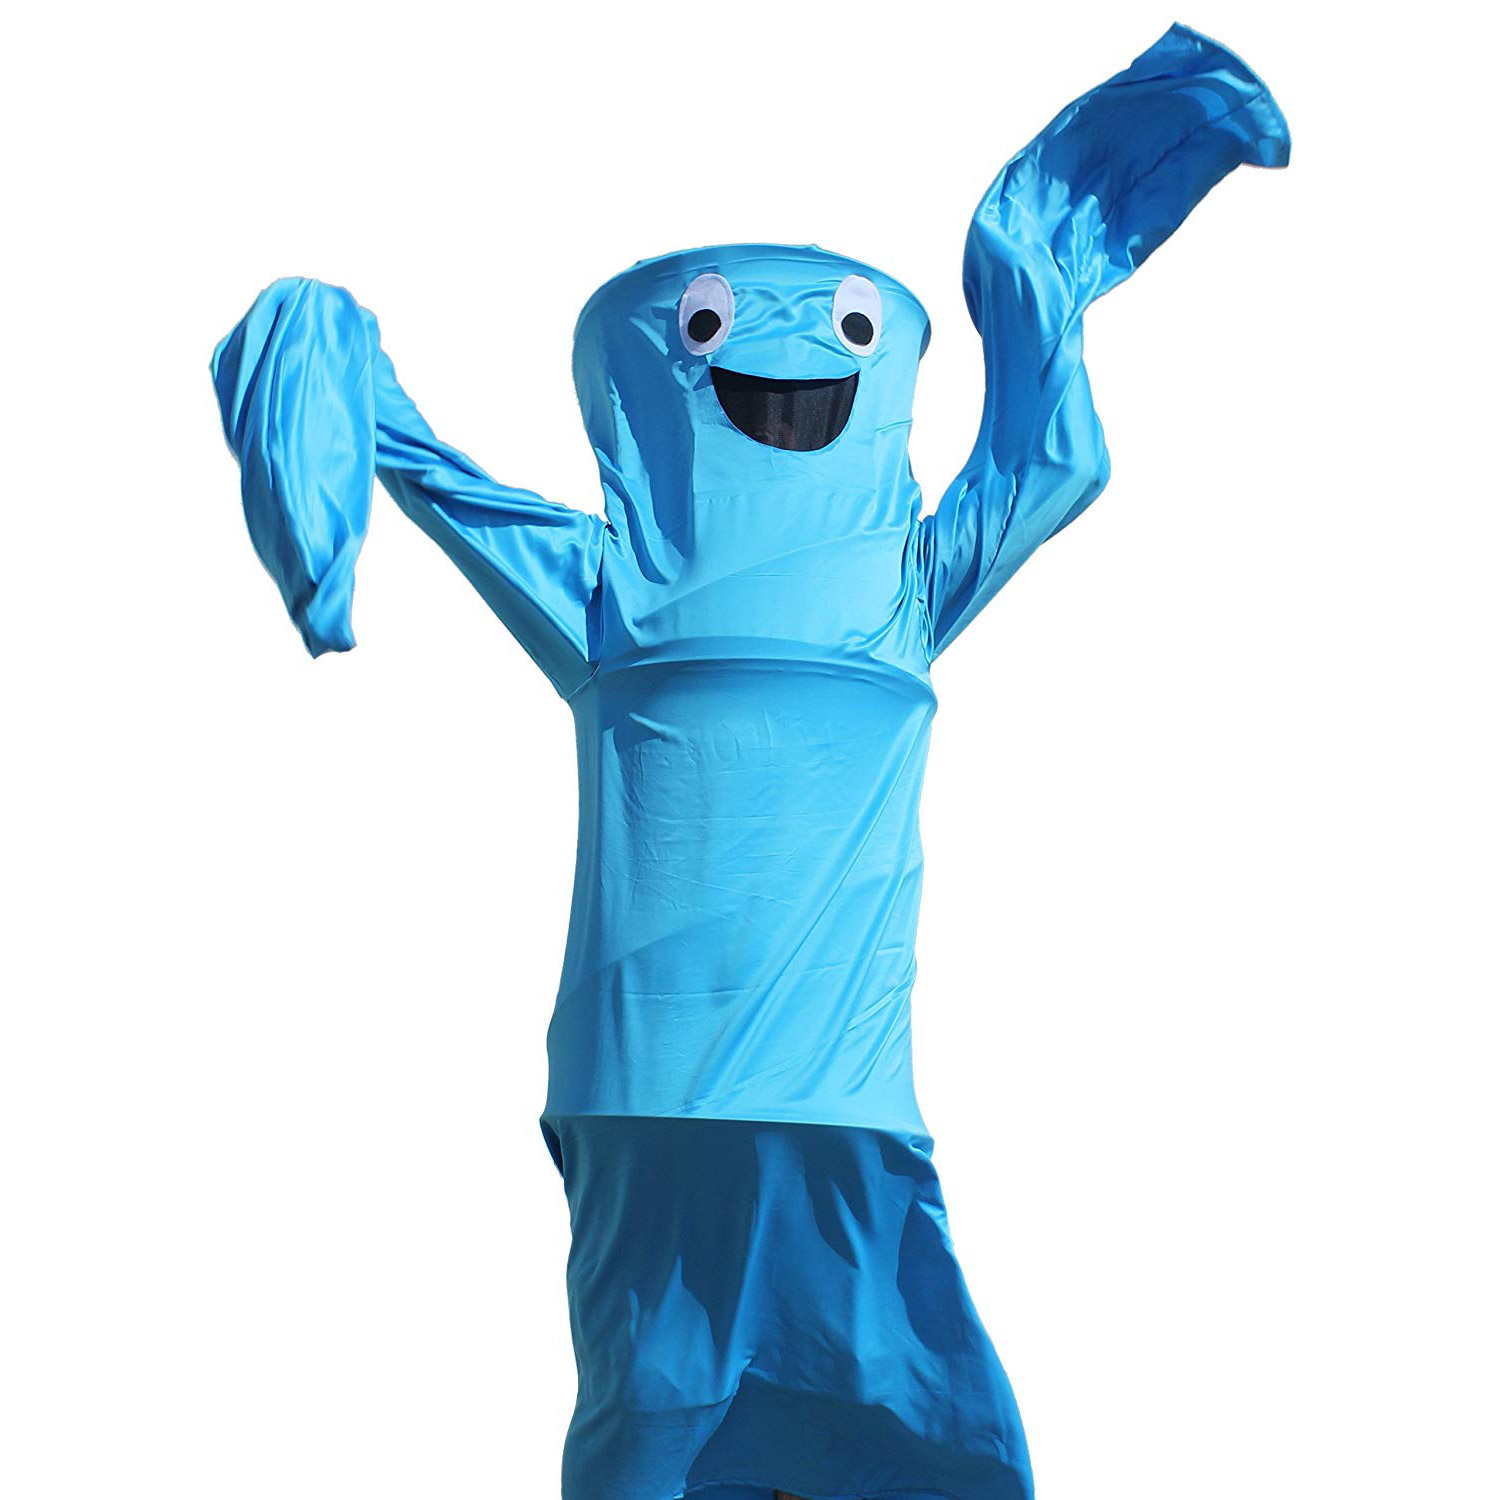 wacky waving inflatable arm flailing tube man costume the green head. Black Bedroom Furniture Sets. Home Design Ideas